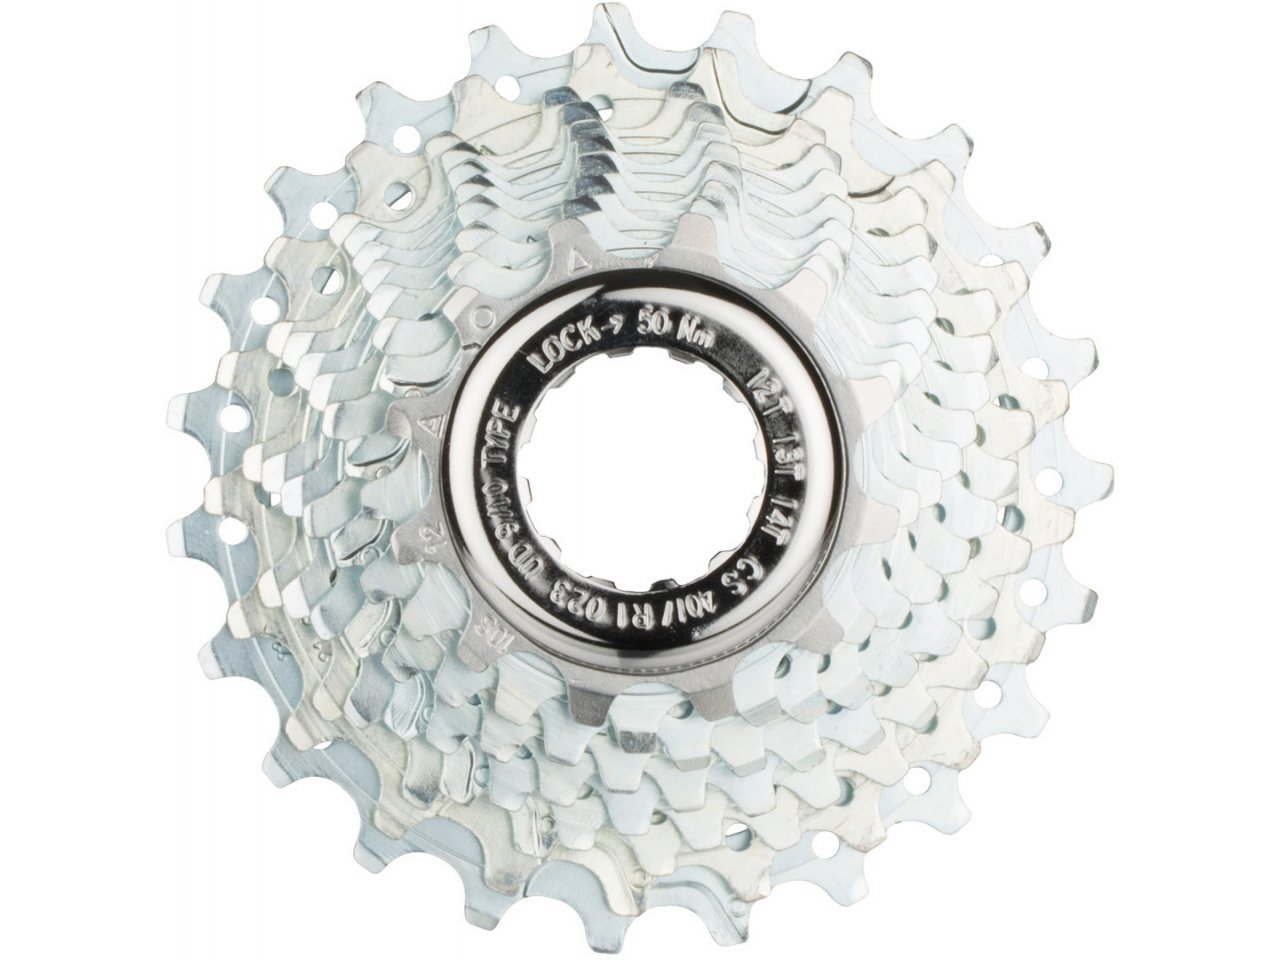 Spare sprocket 27T insert cassette Campagnolo 9-10 speed MICHE bicycle